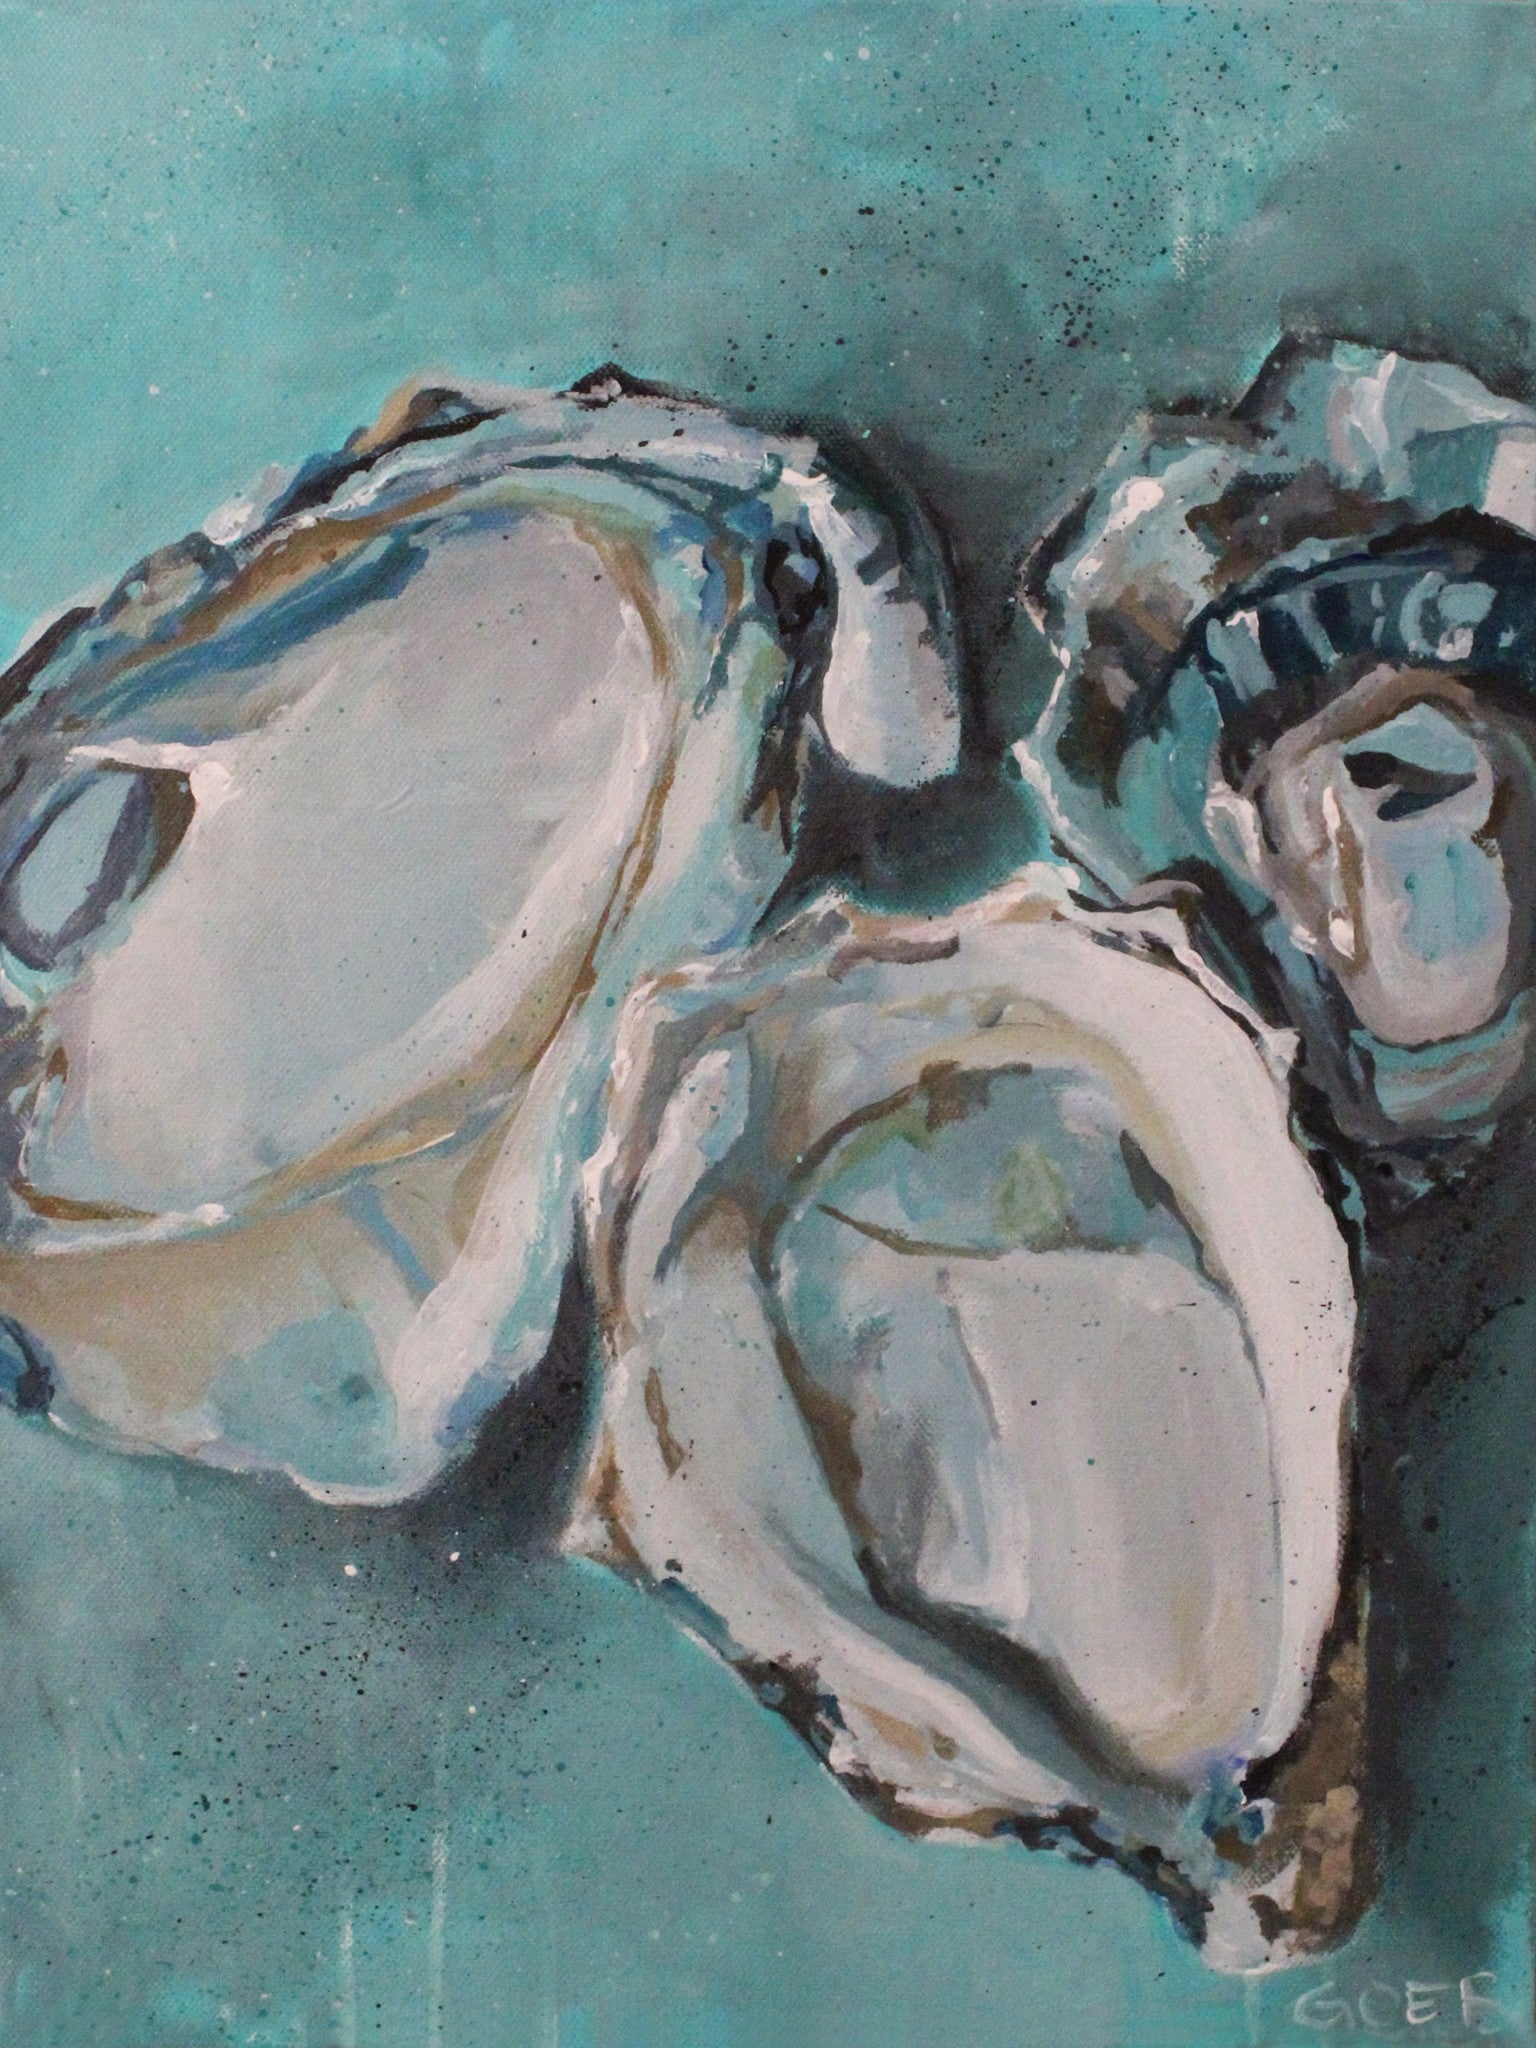 Oysters in Turquoise